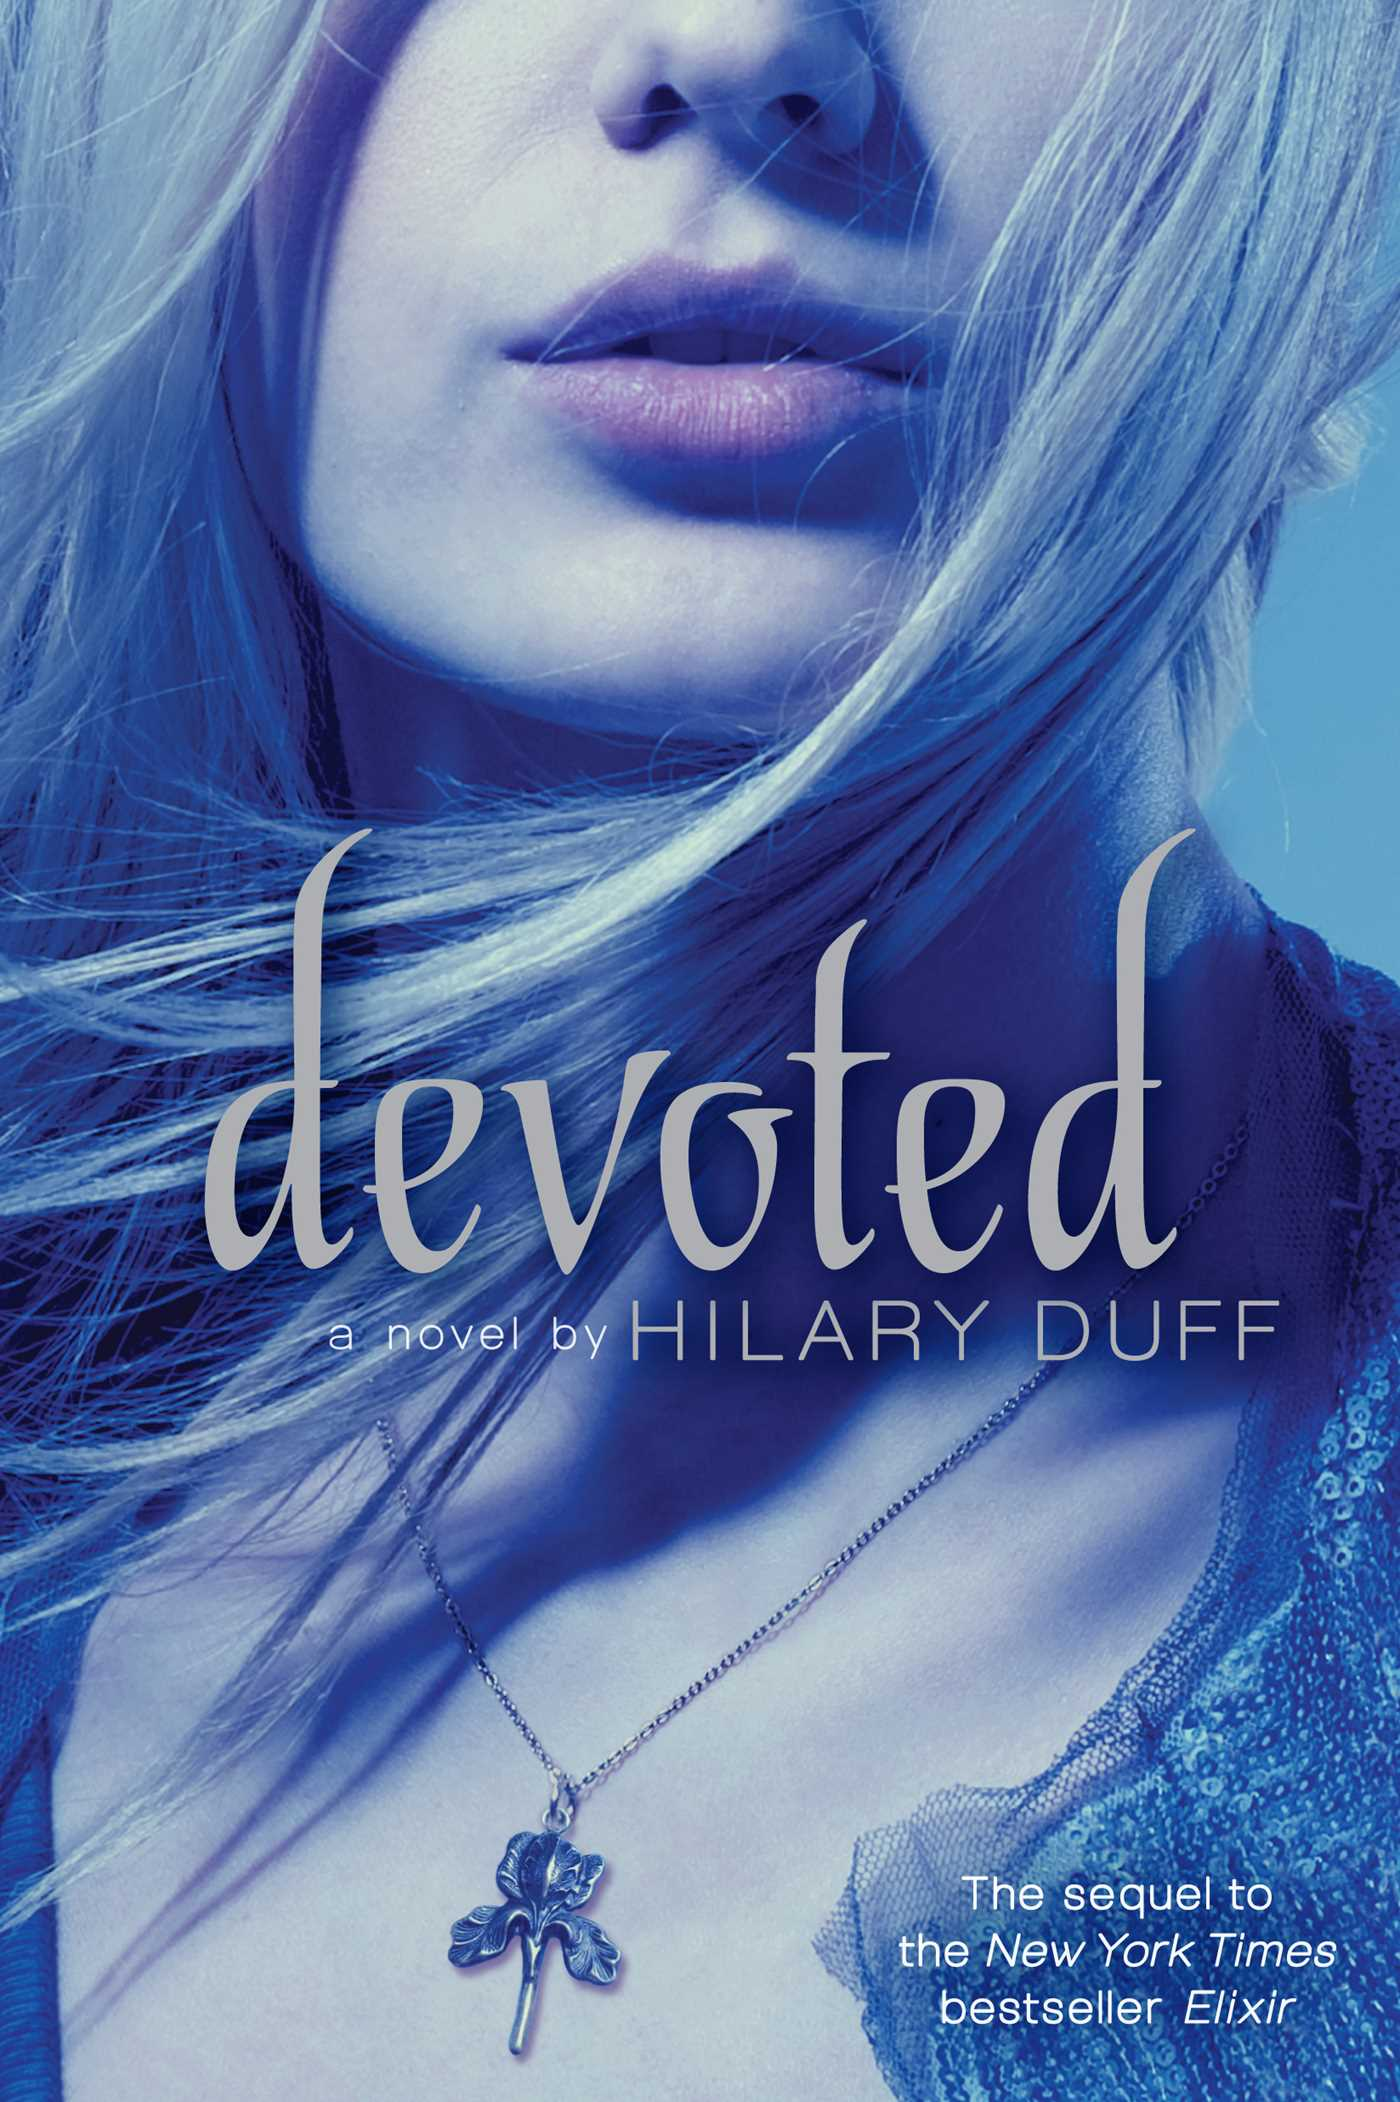 Devoted-9781442408609_hr